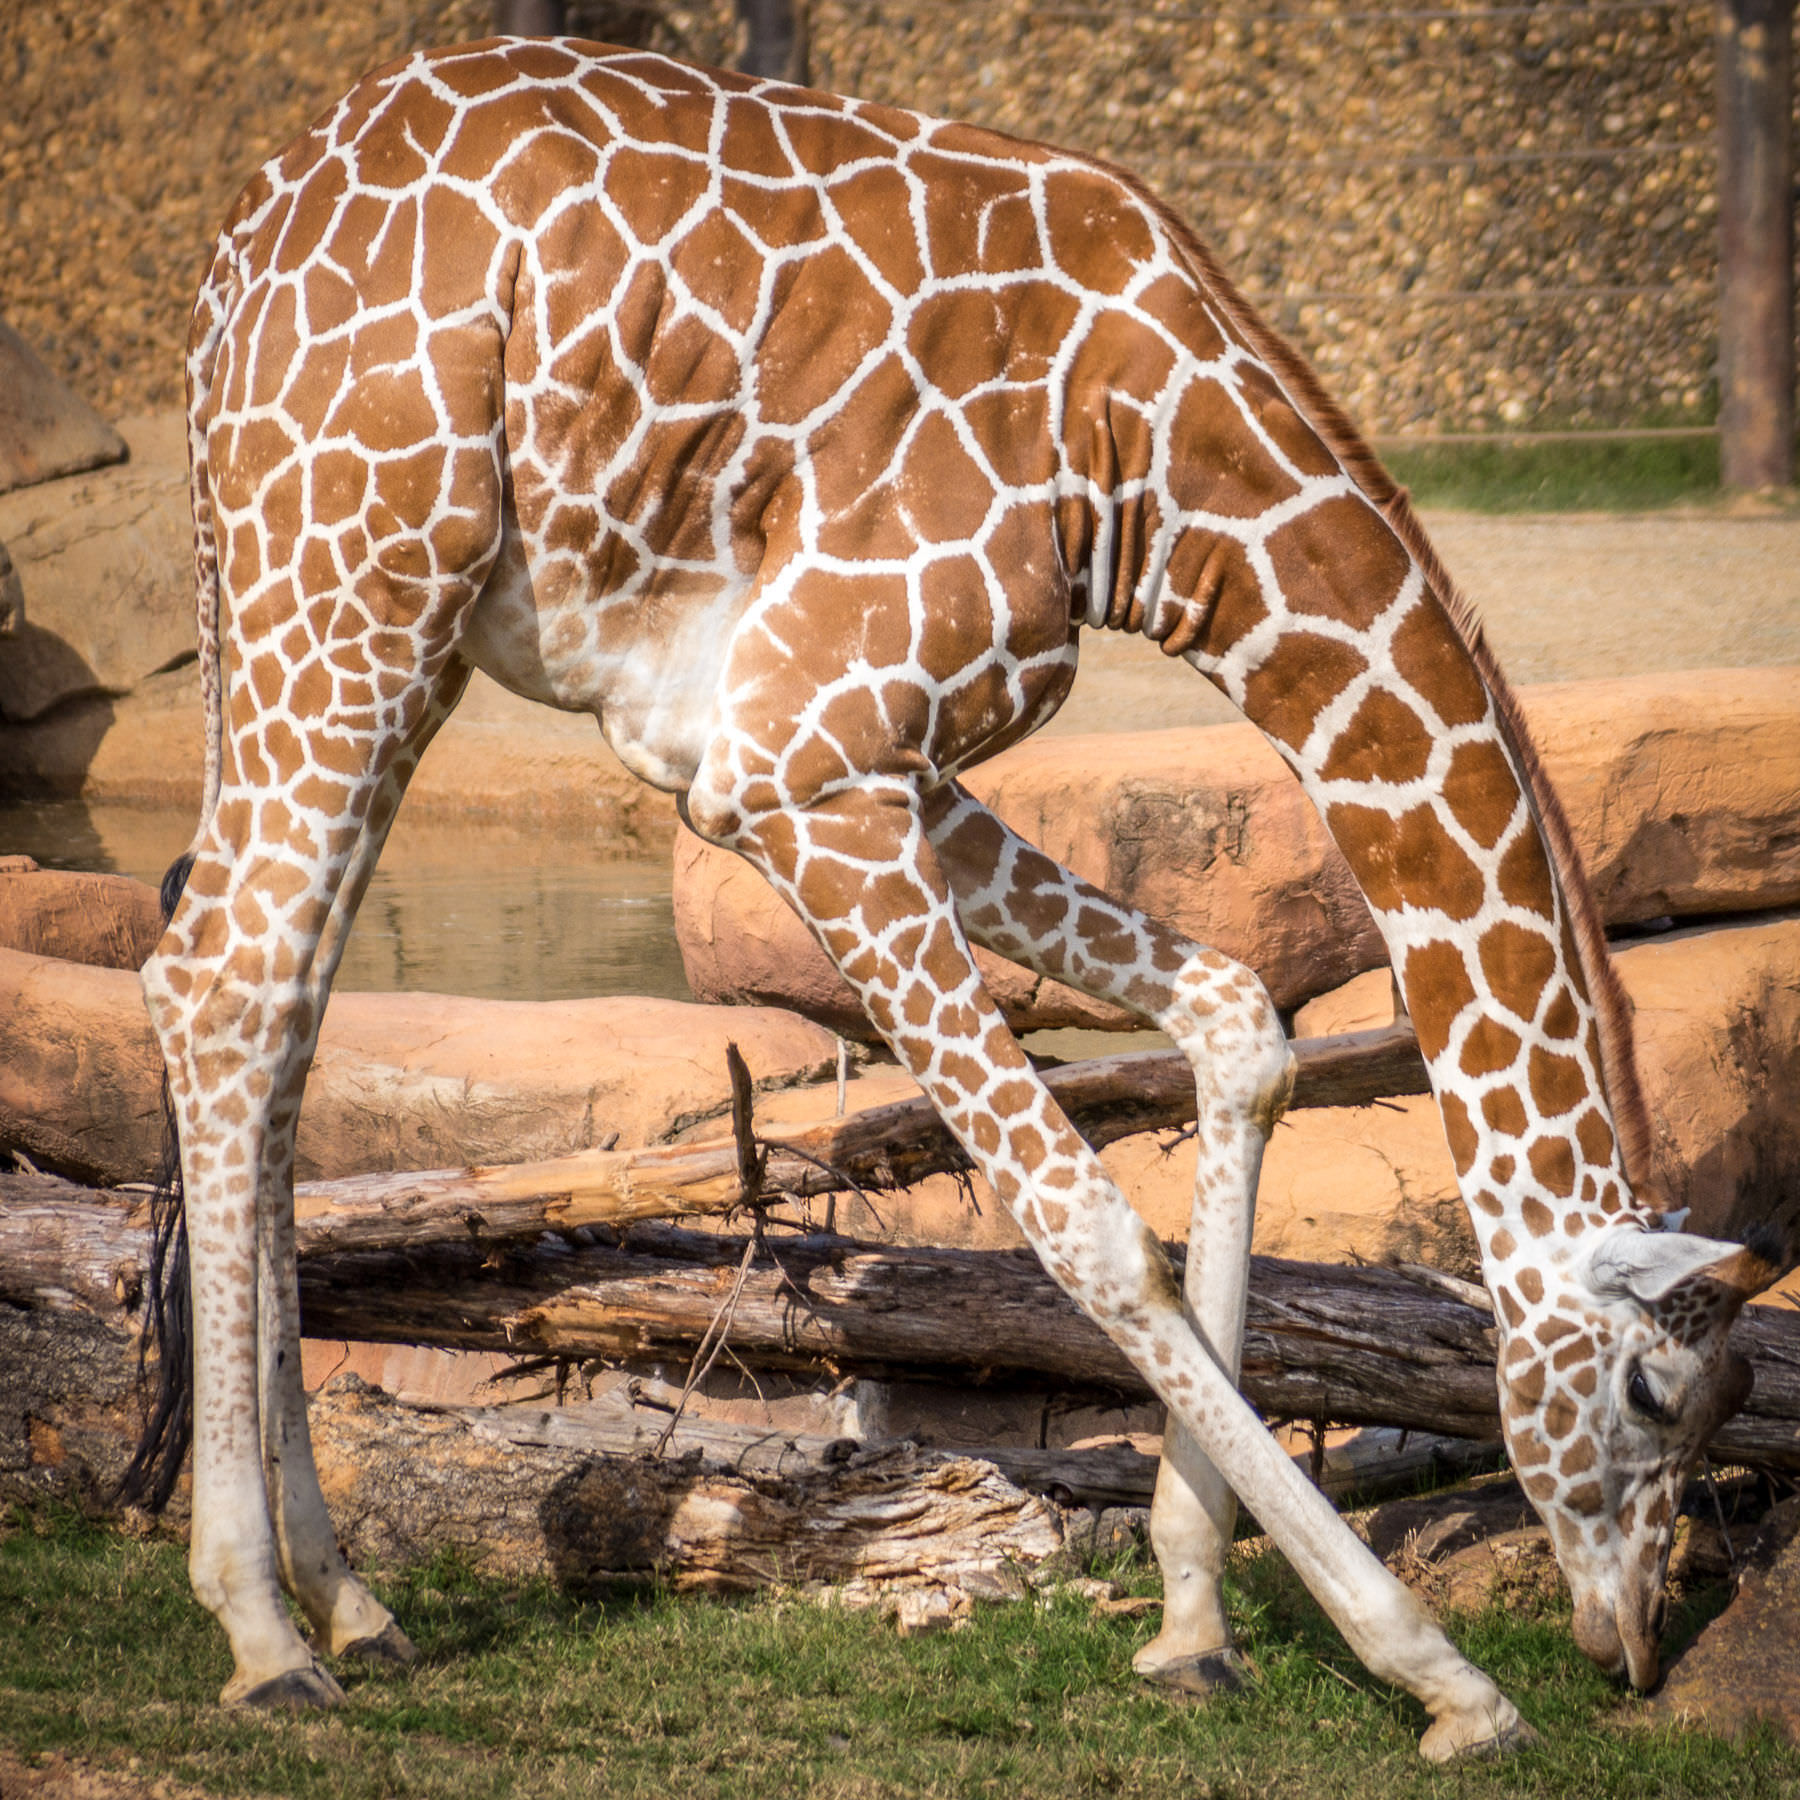 A giraffe at Tyler, Texas' Caldwell Zoo munches on some grass in its enclosure.